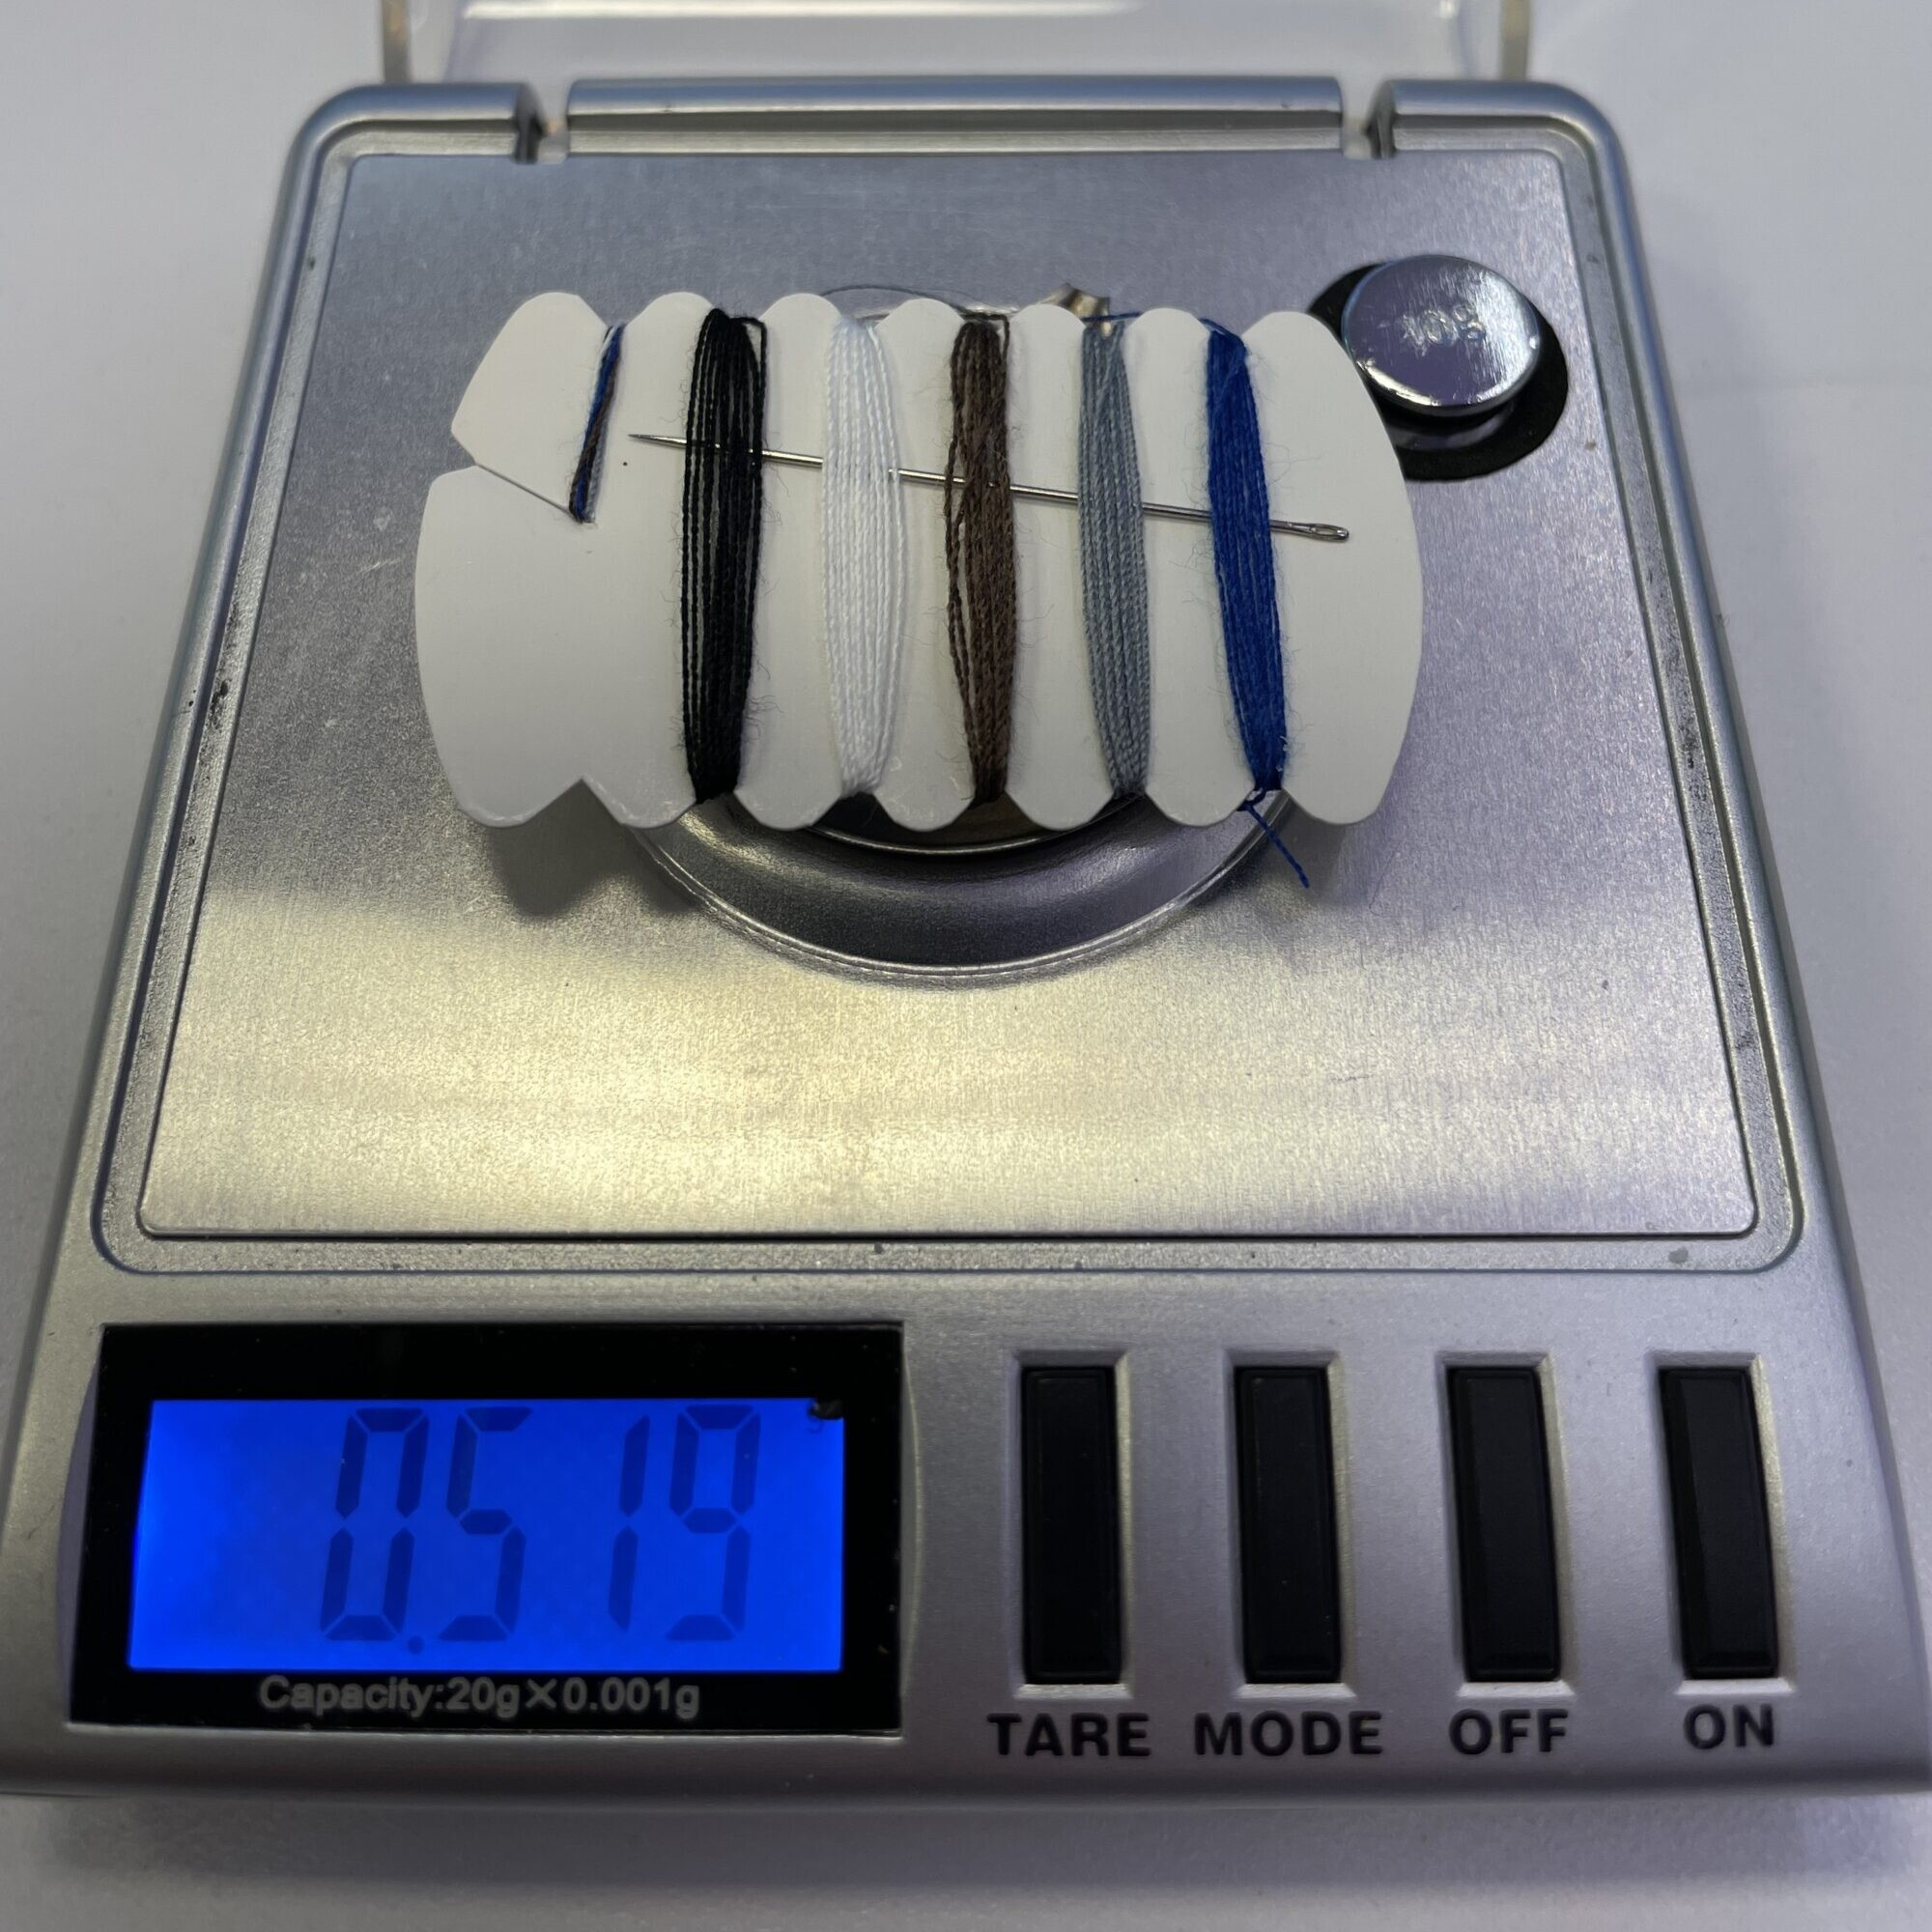 a sewing kit on a scale